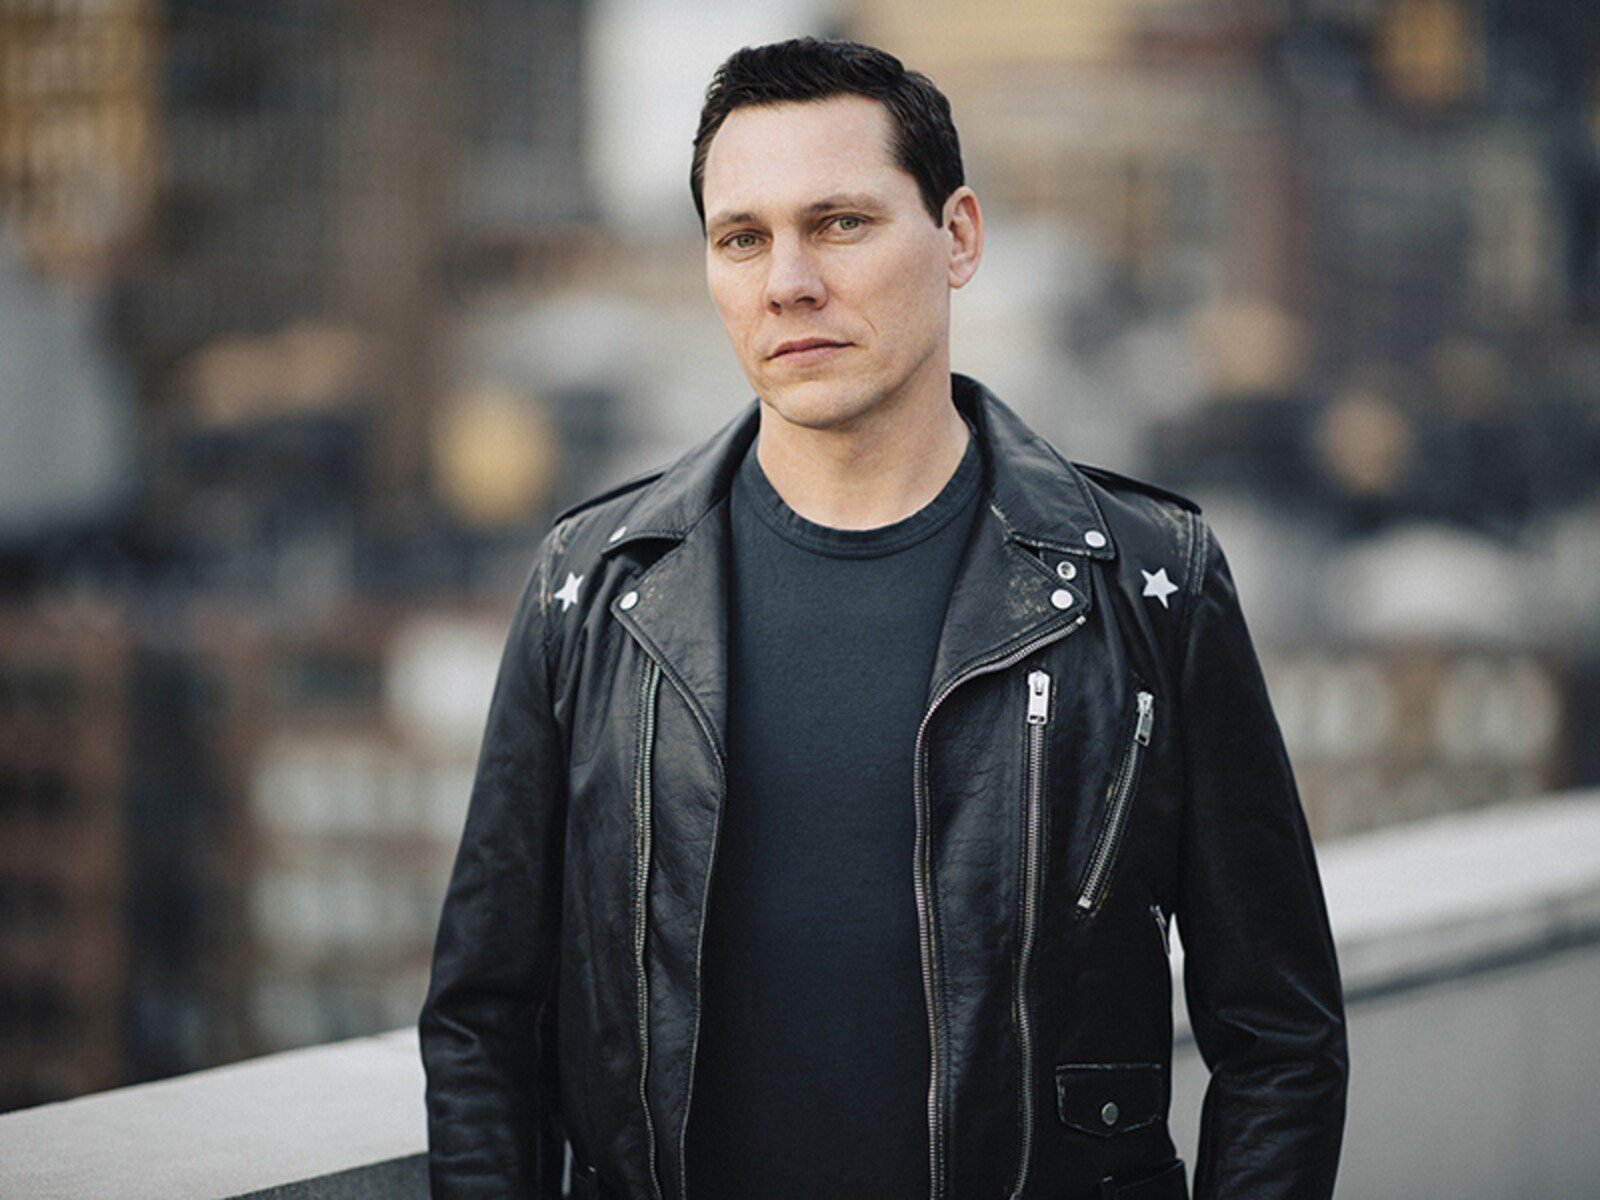 tiesto-promo-photo-1-credit-jordan-loyd-